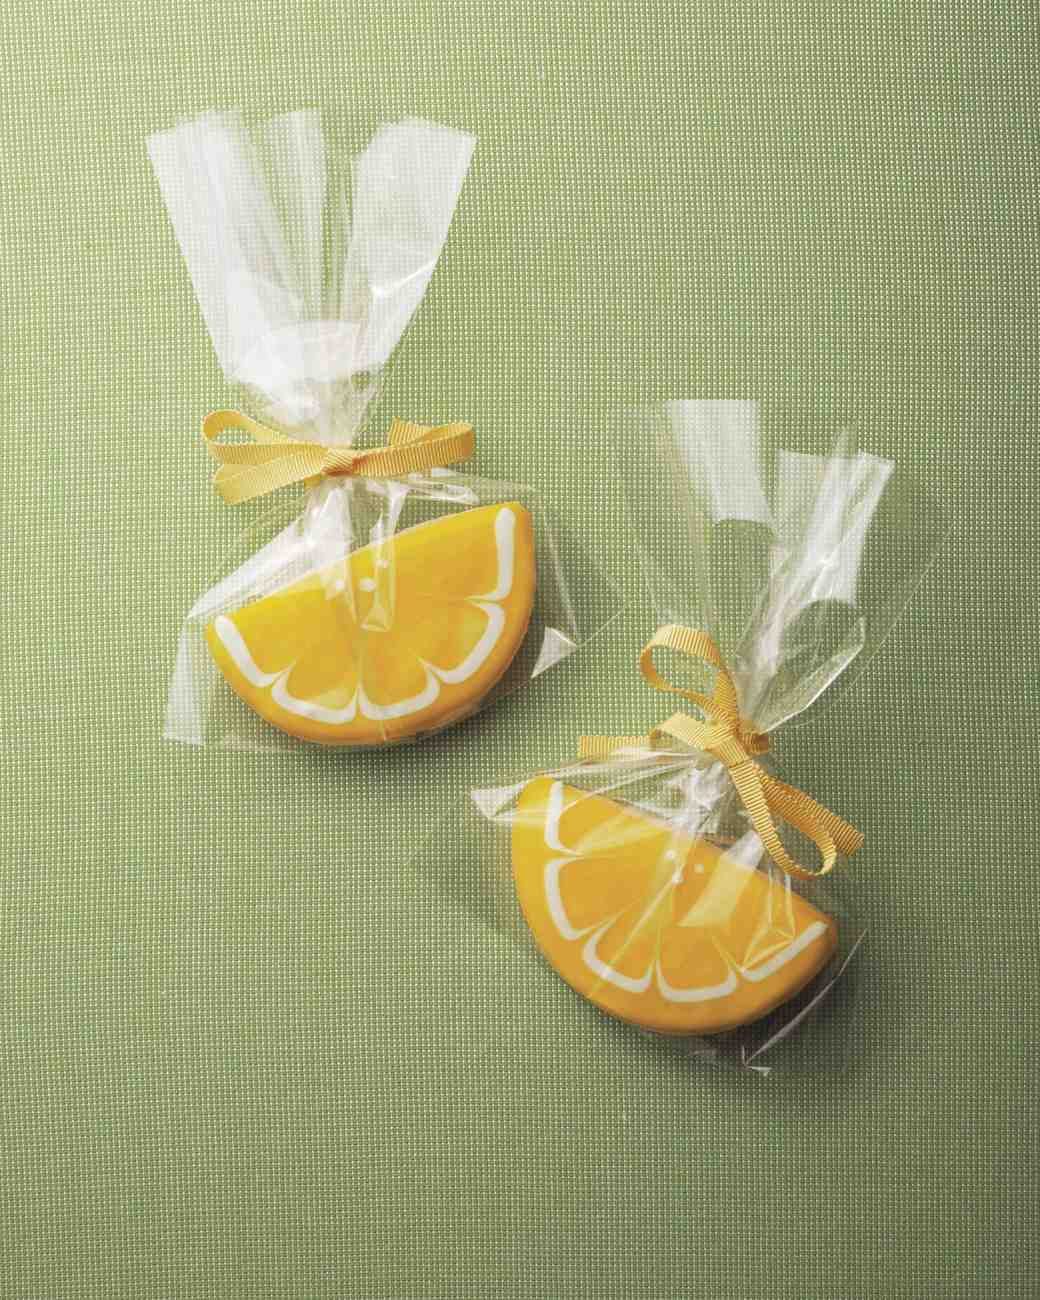 merin-ryan-real-wedding-lemon-cookie-favors.jpg